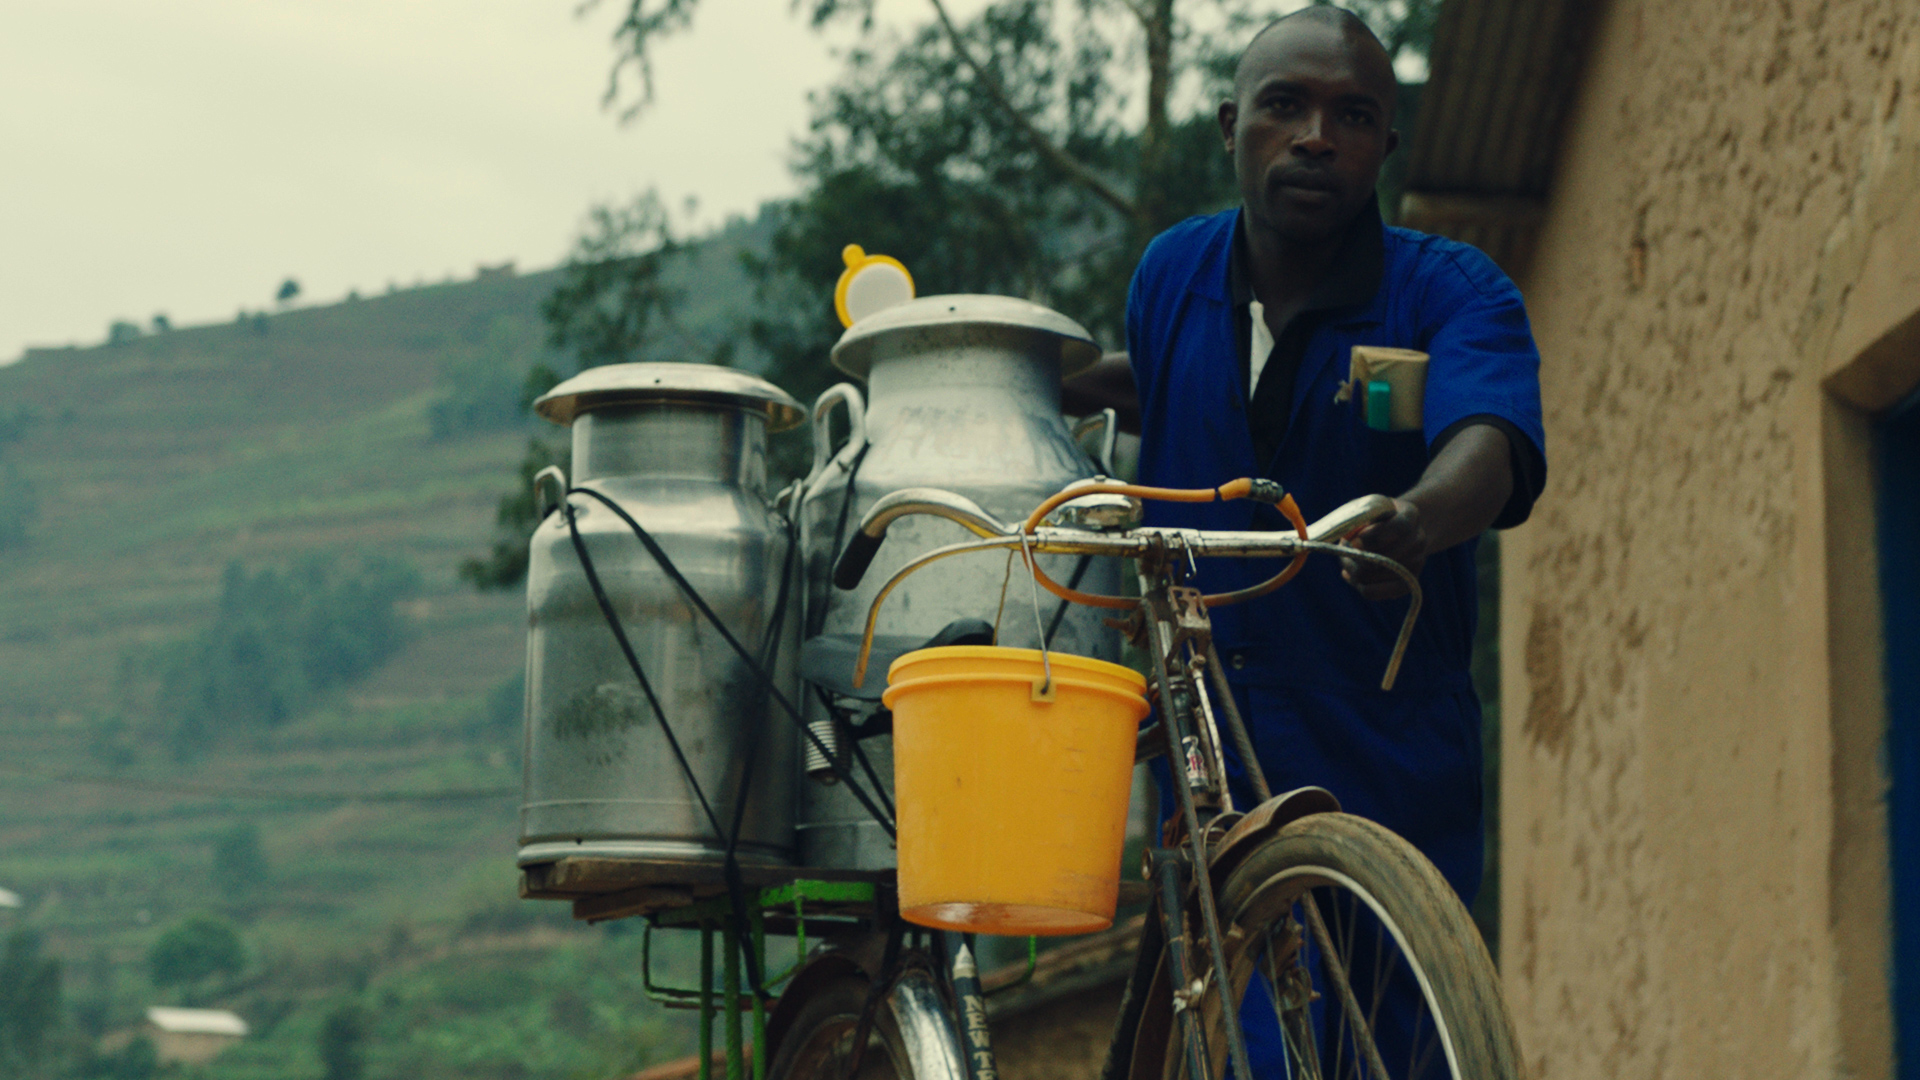 A man pushes a bicycle with milk canisters